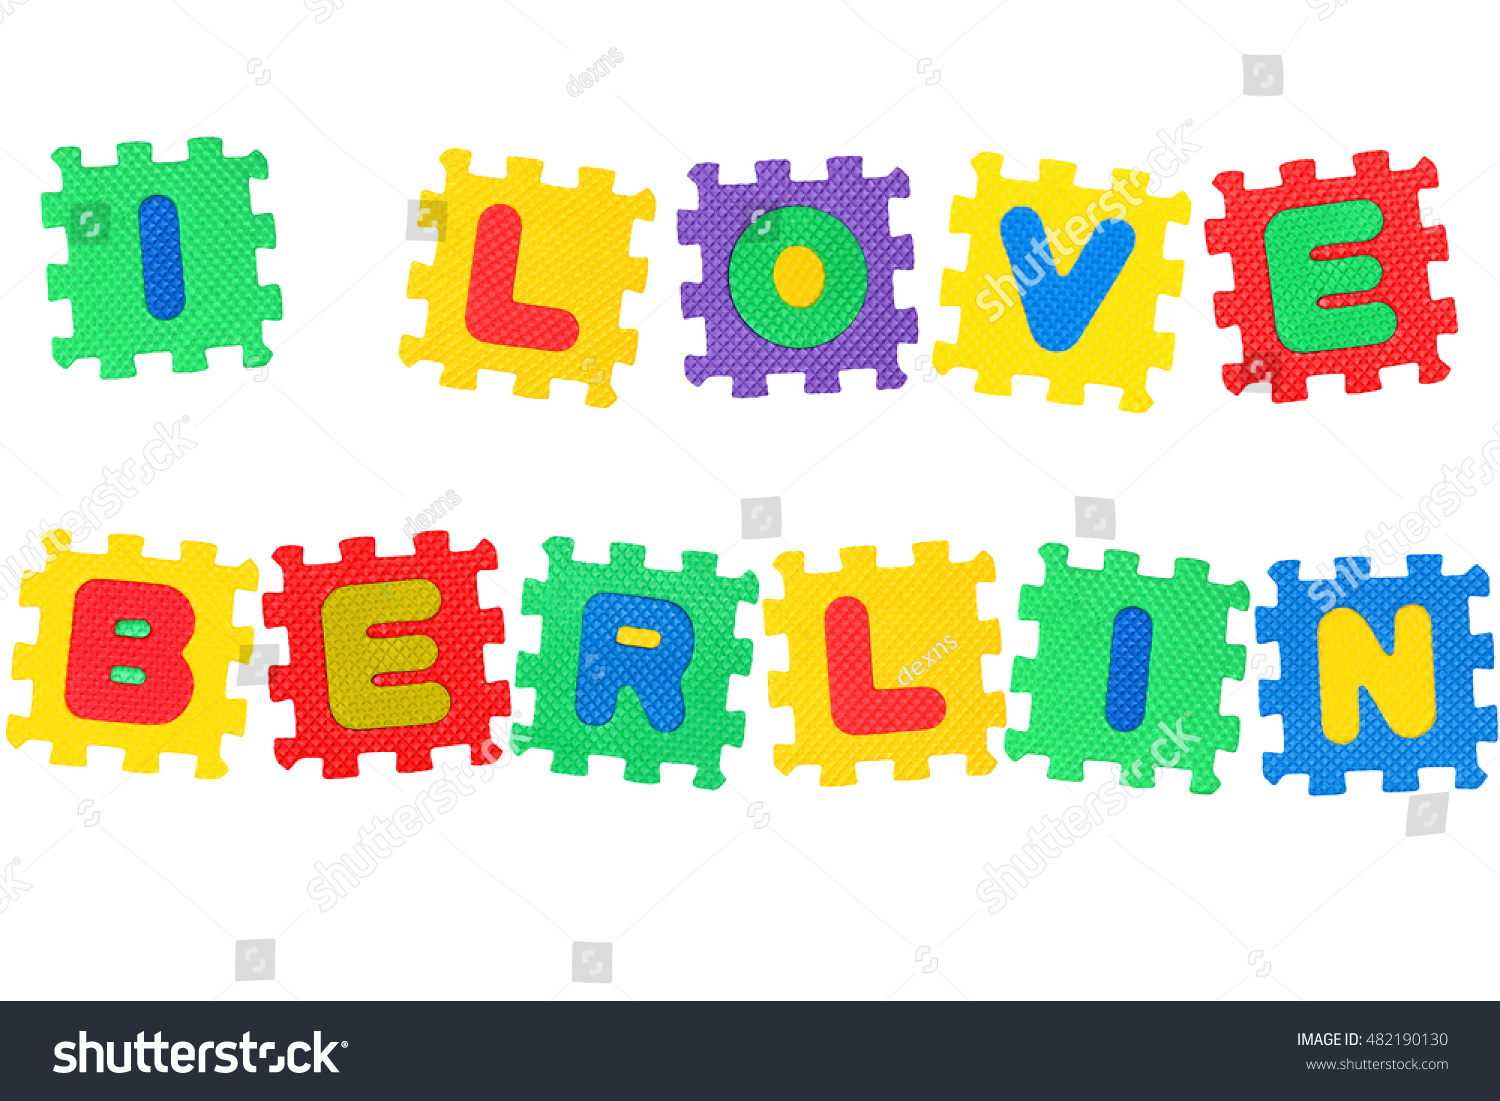 Berlin Puzzle Message Love Berlin Letters Puzzle Isolated Stock Photo Edit Now